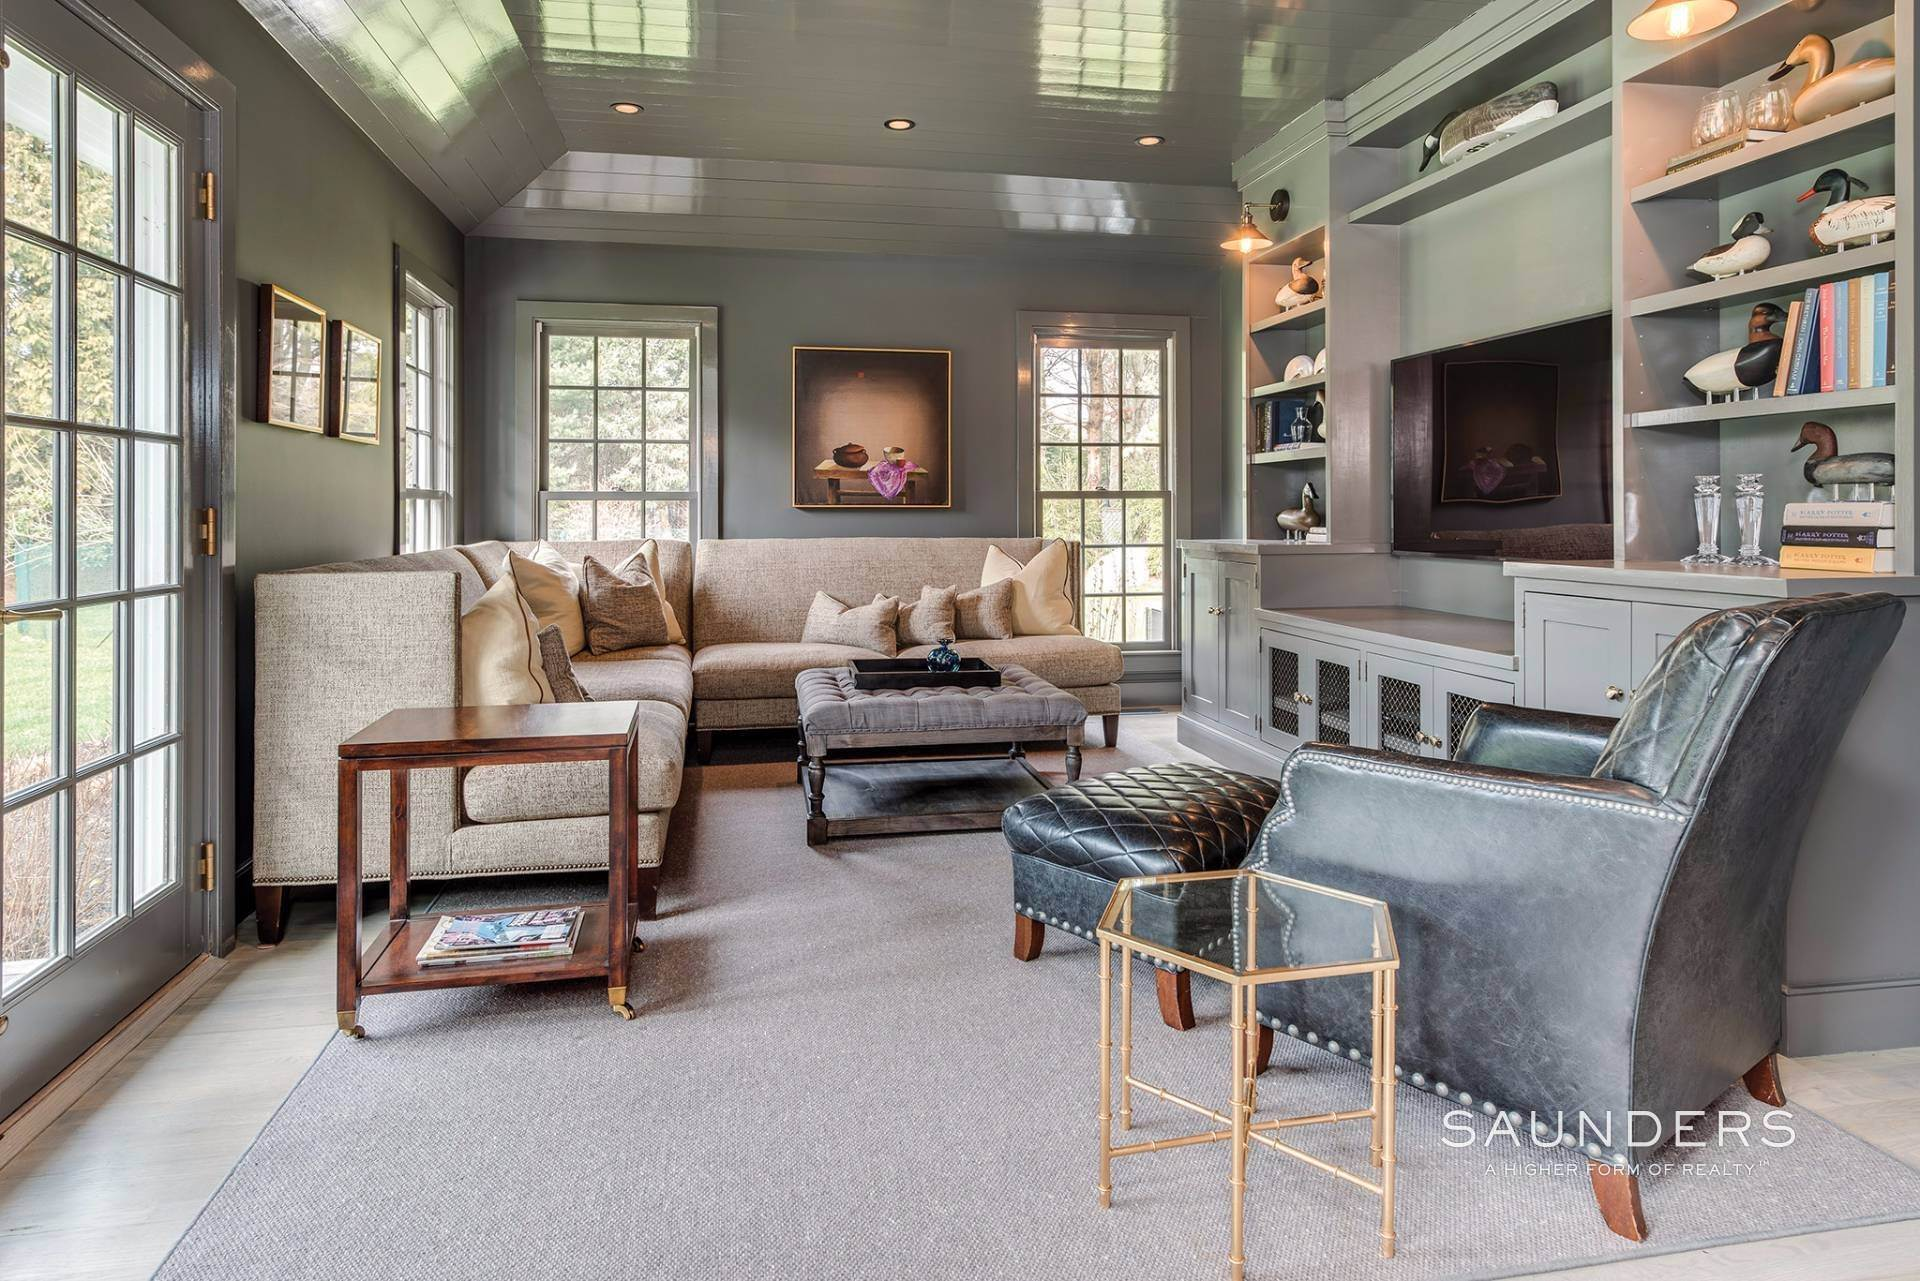 12. Single Family Homes for Sale at East Hampton Village 4 Carriage Court, East Hampton, East Hampton Town, NY 11937